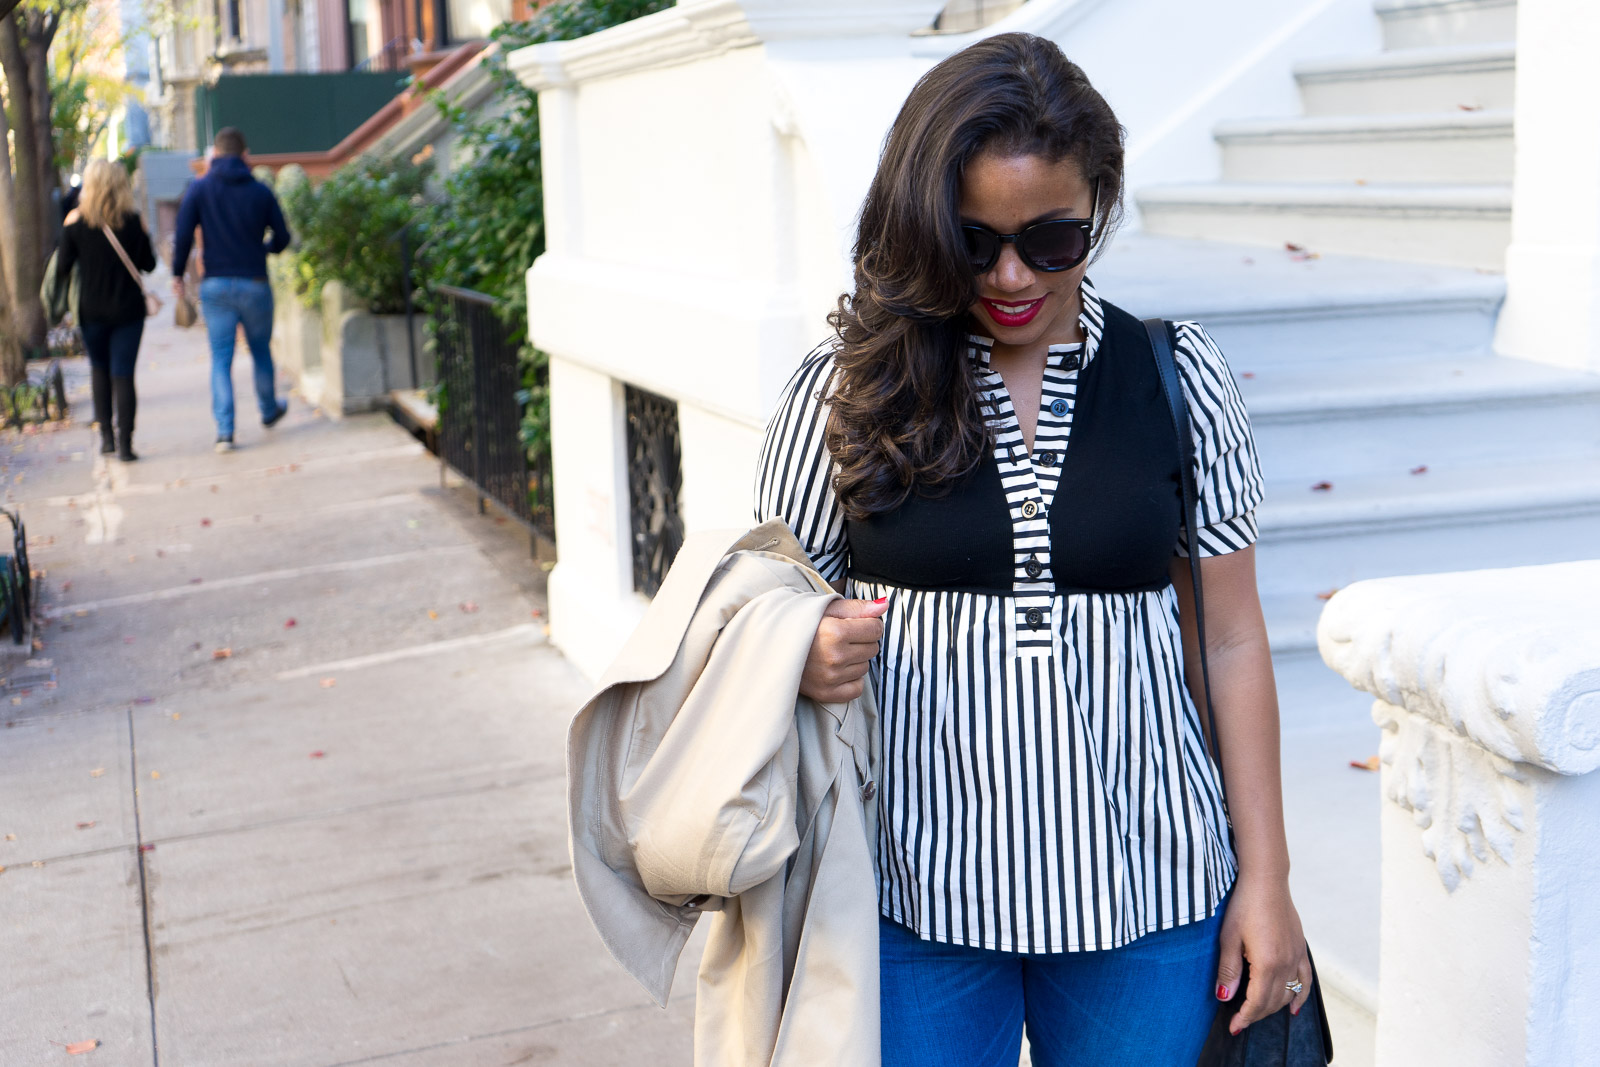 DVF-stripped-shirt-zara-jeans-ASOS-Trench-Coat-Steve-Madden-Handbag-Saks-Off-5th-24-1.jpg